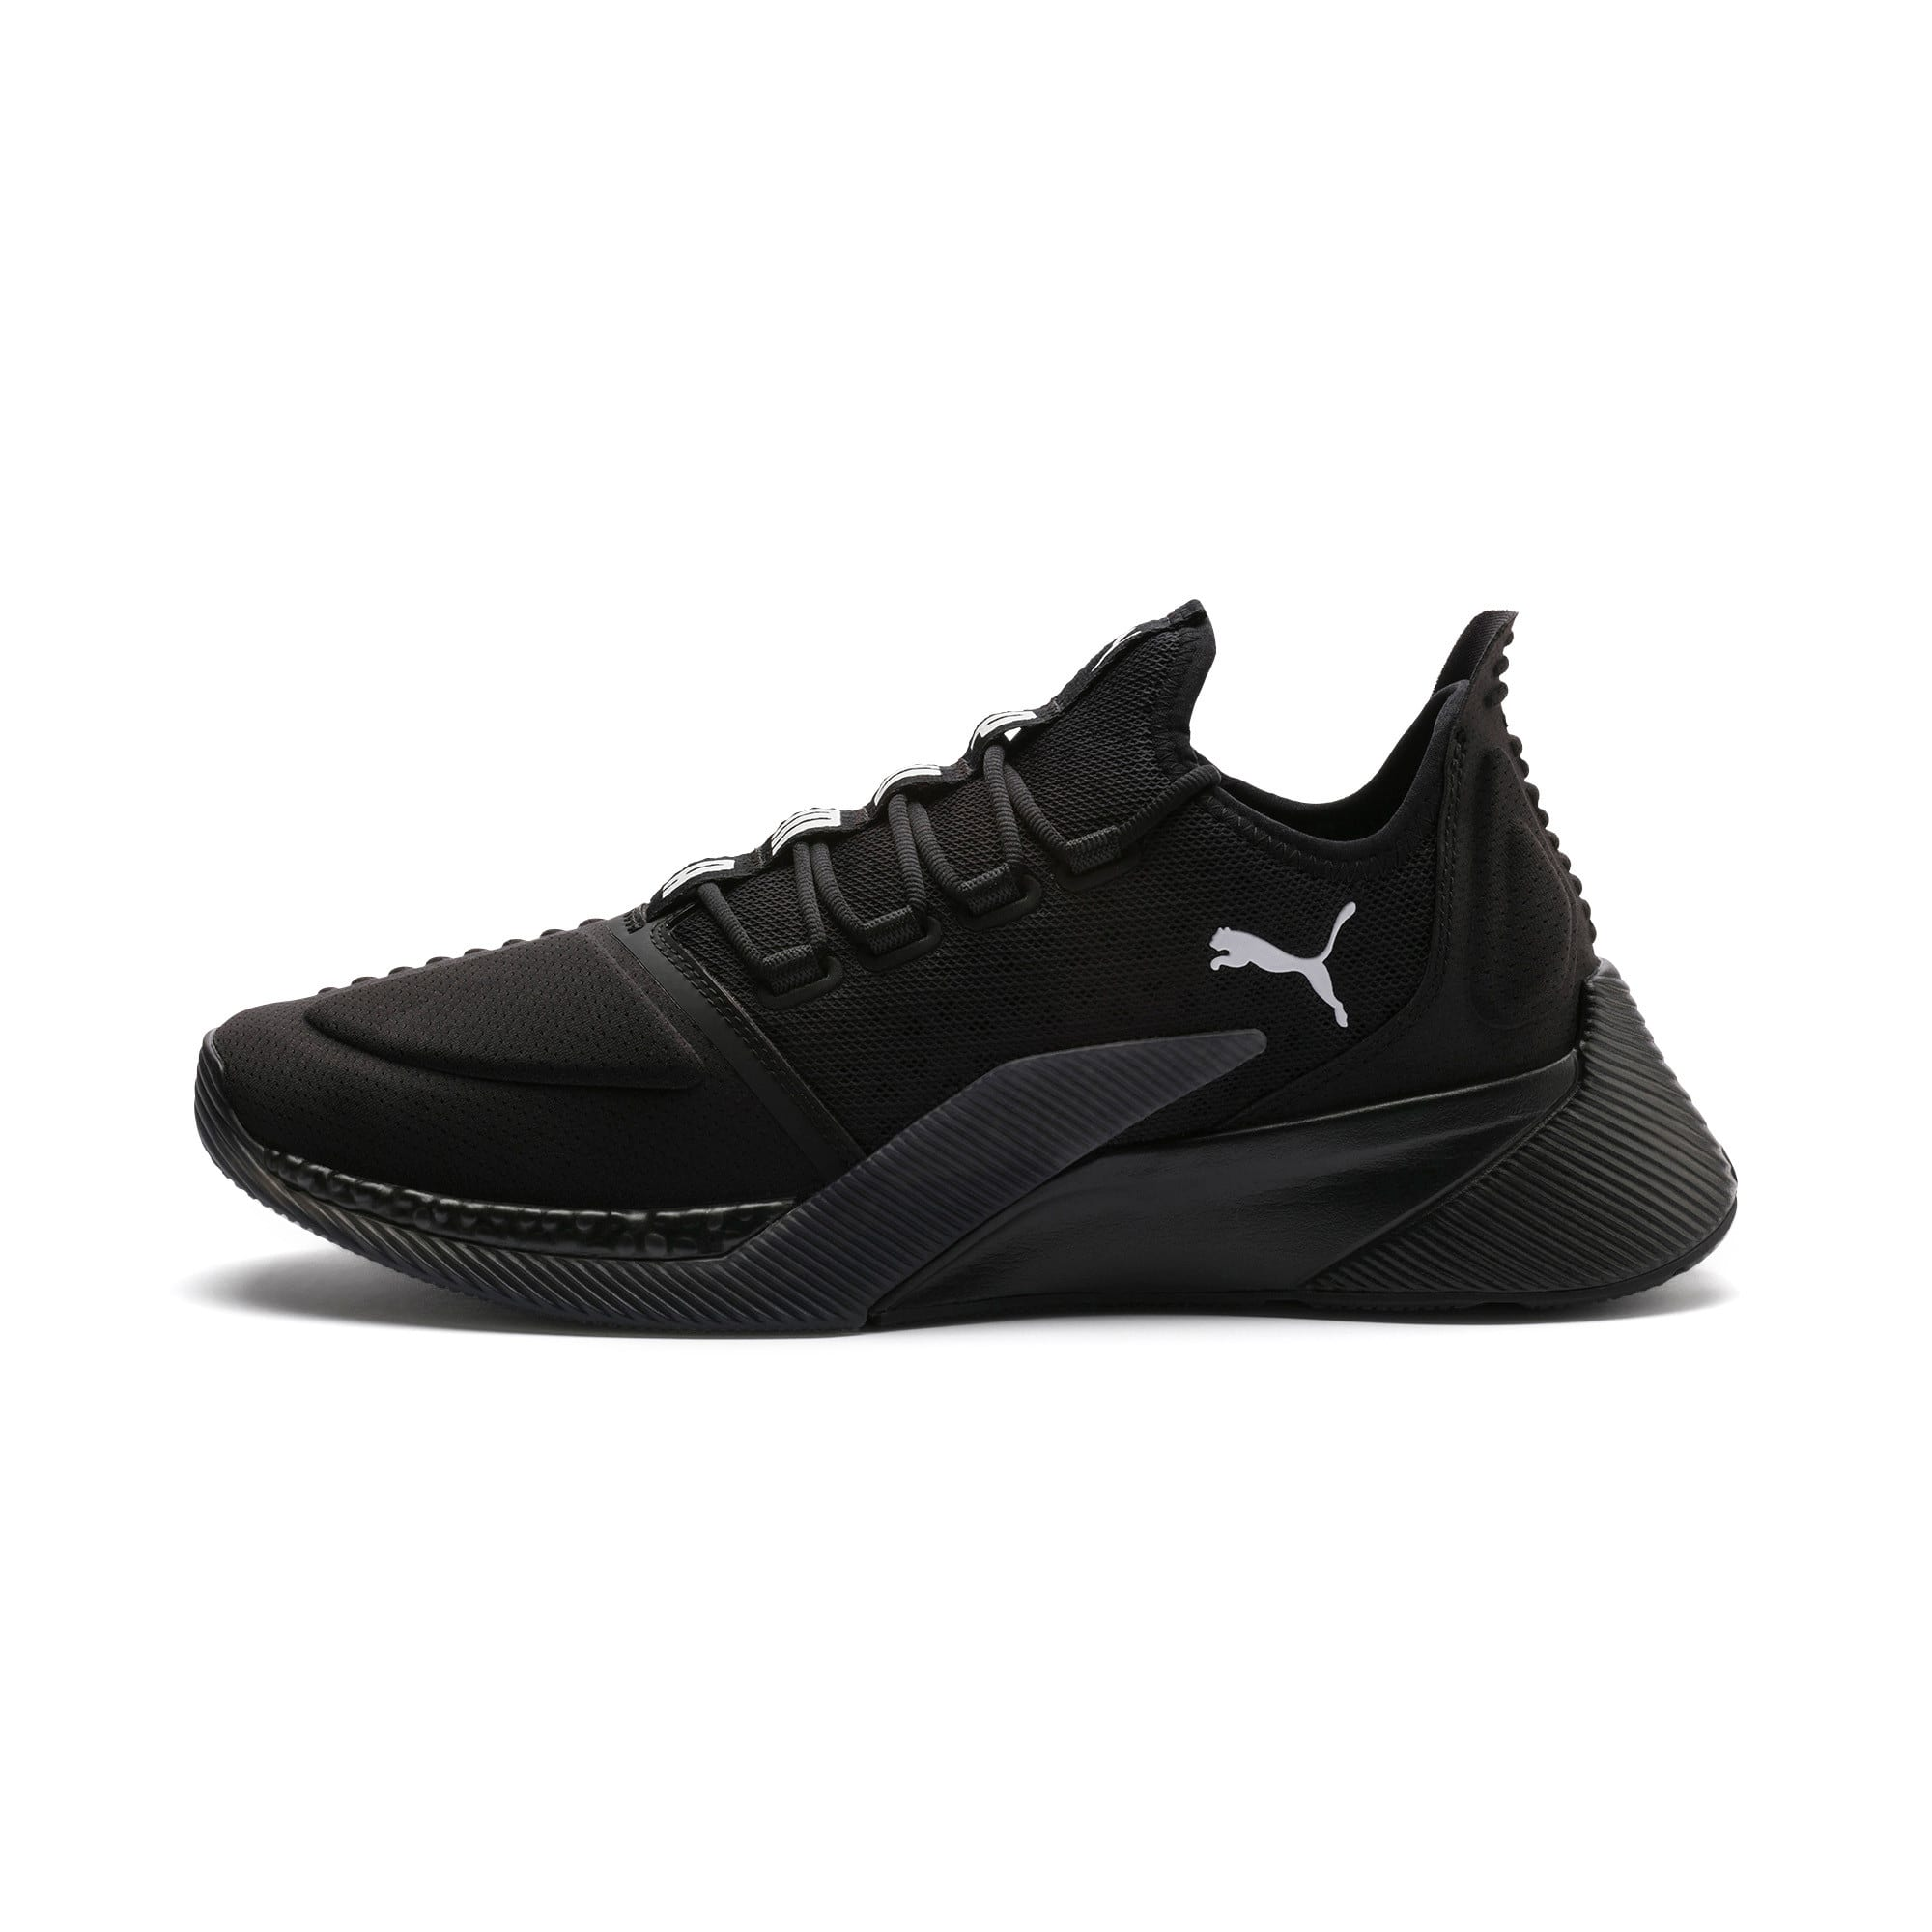 Thumbnail 1 of Xcelerator Running Shoes, Puma Black-Puma Black, medium